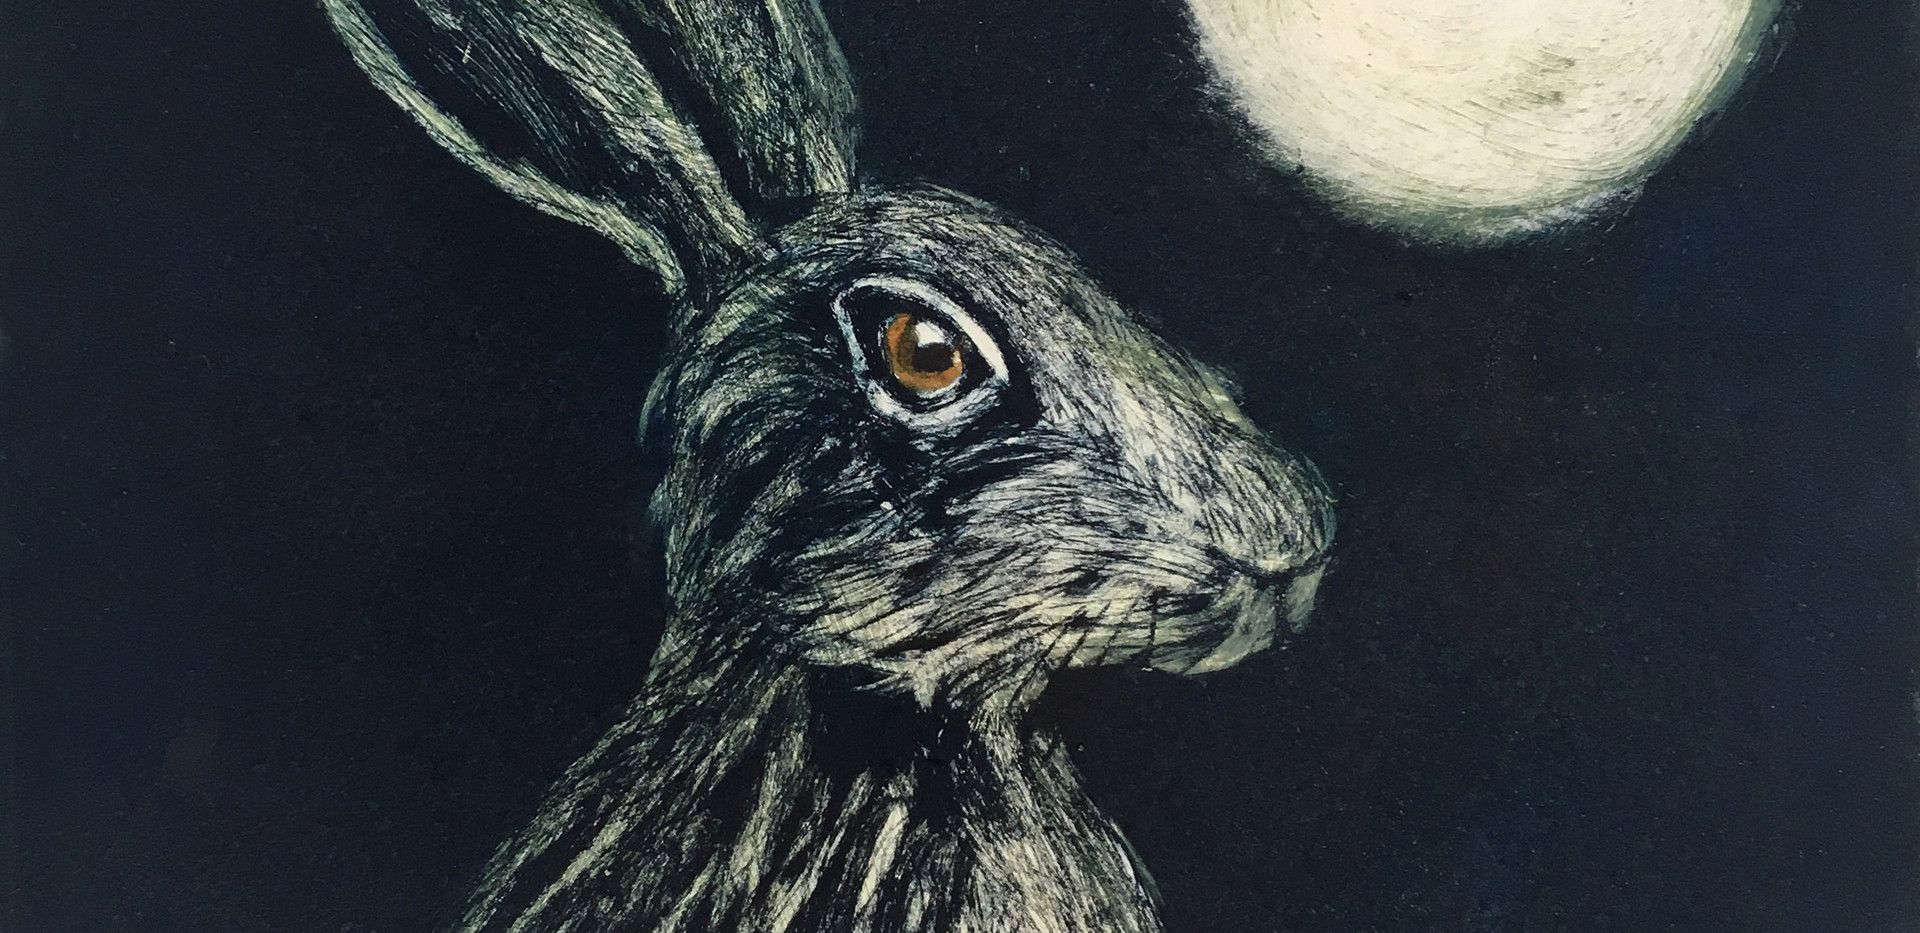 Hare in the Moonlight